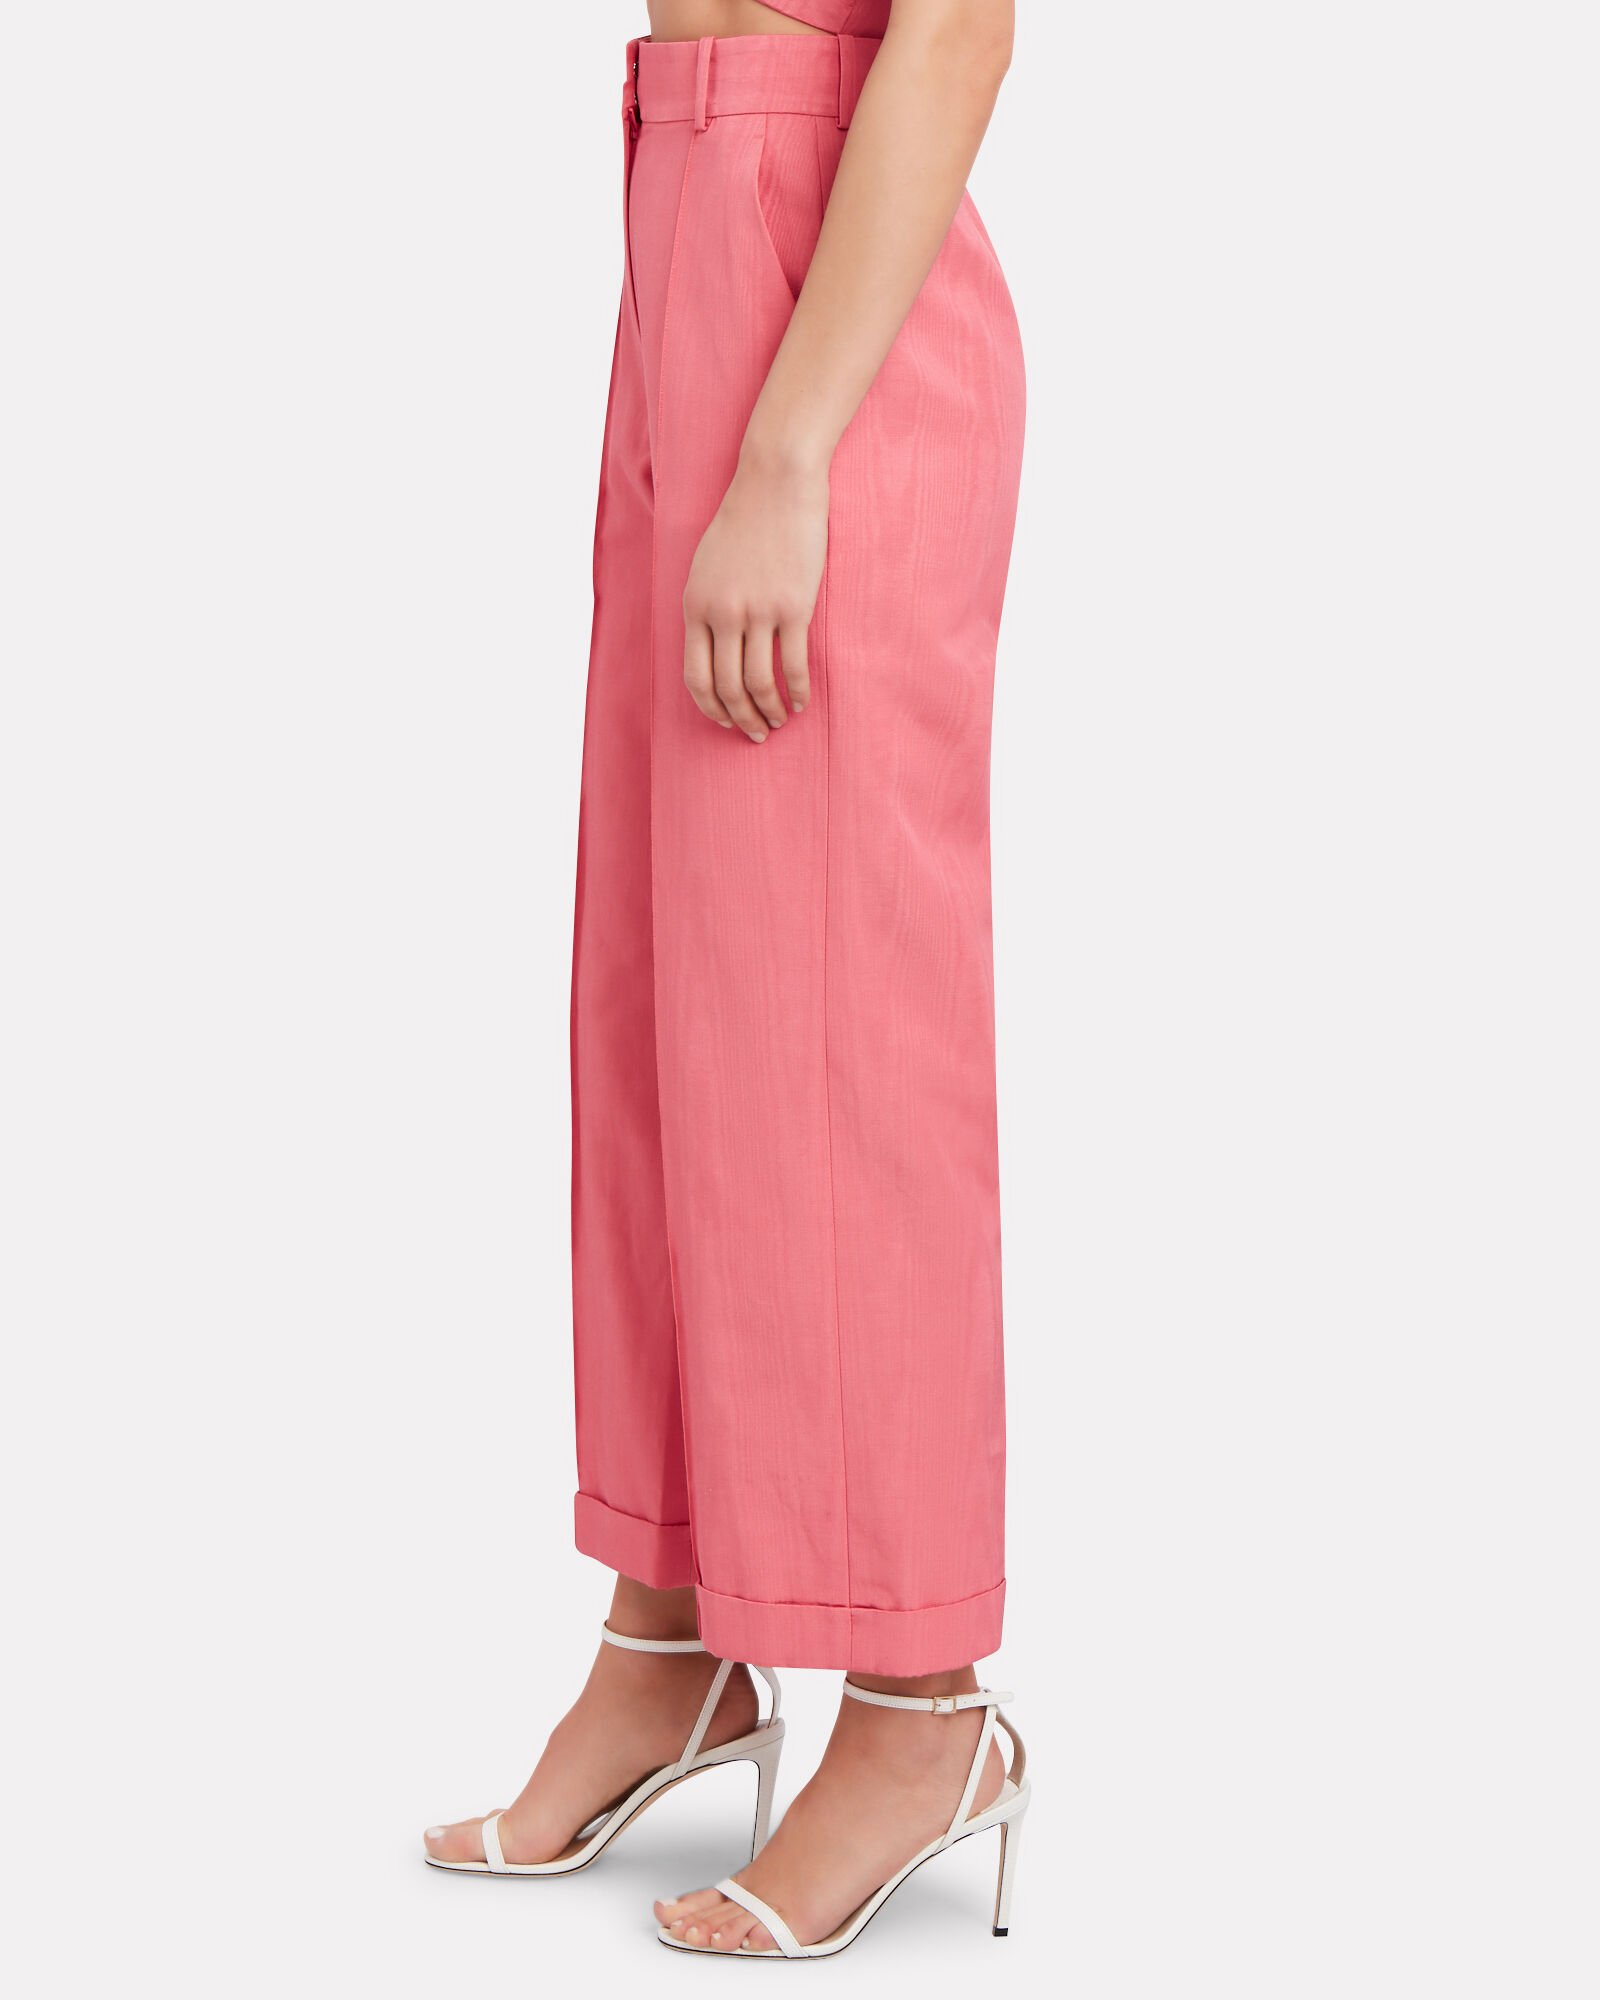 Charlie Moiré Straight-Leg Trousers, PINK, hi-res